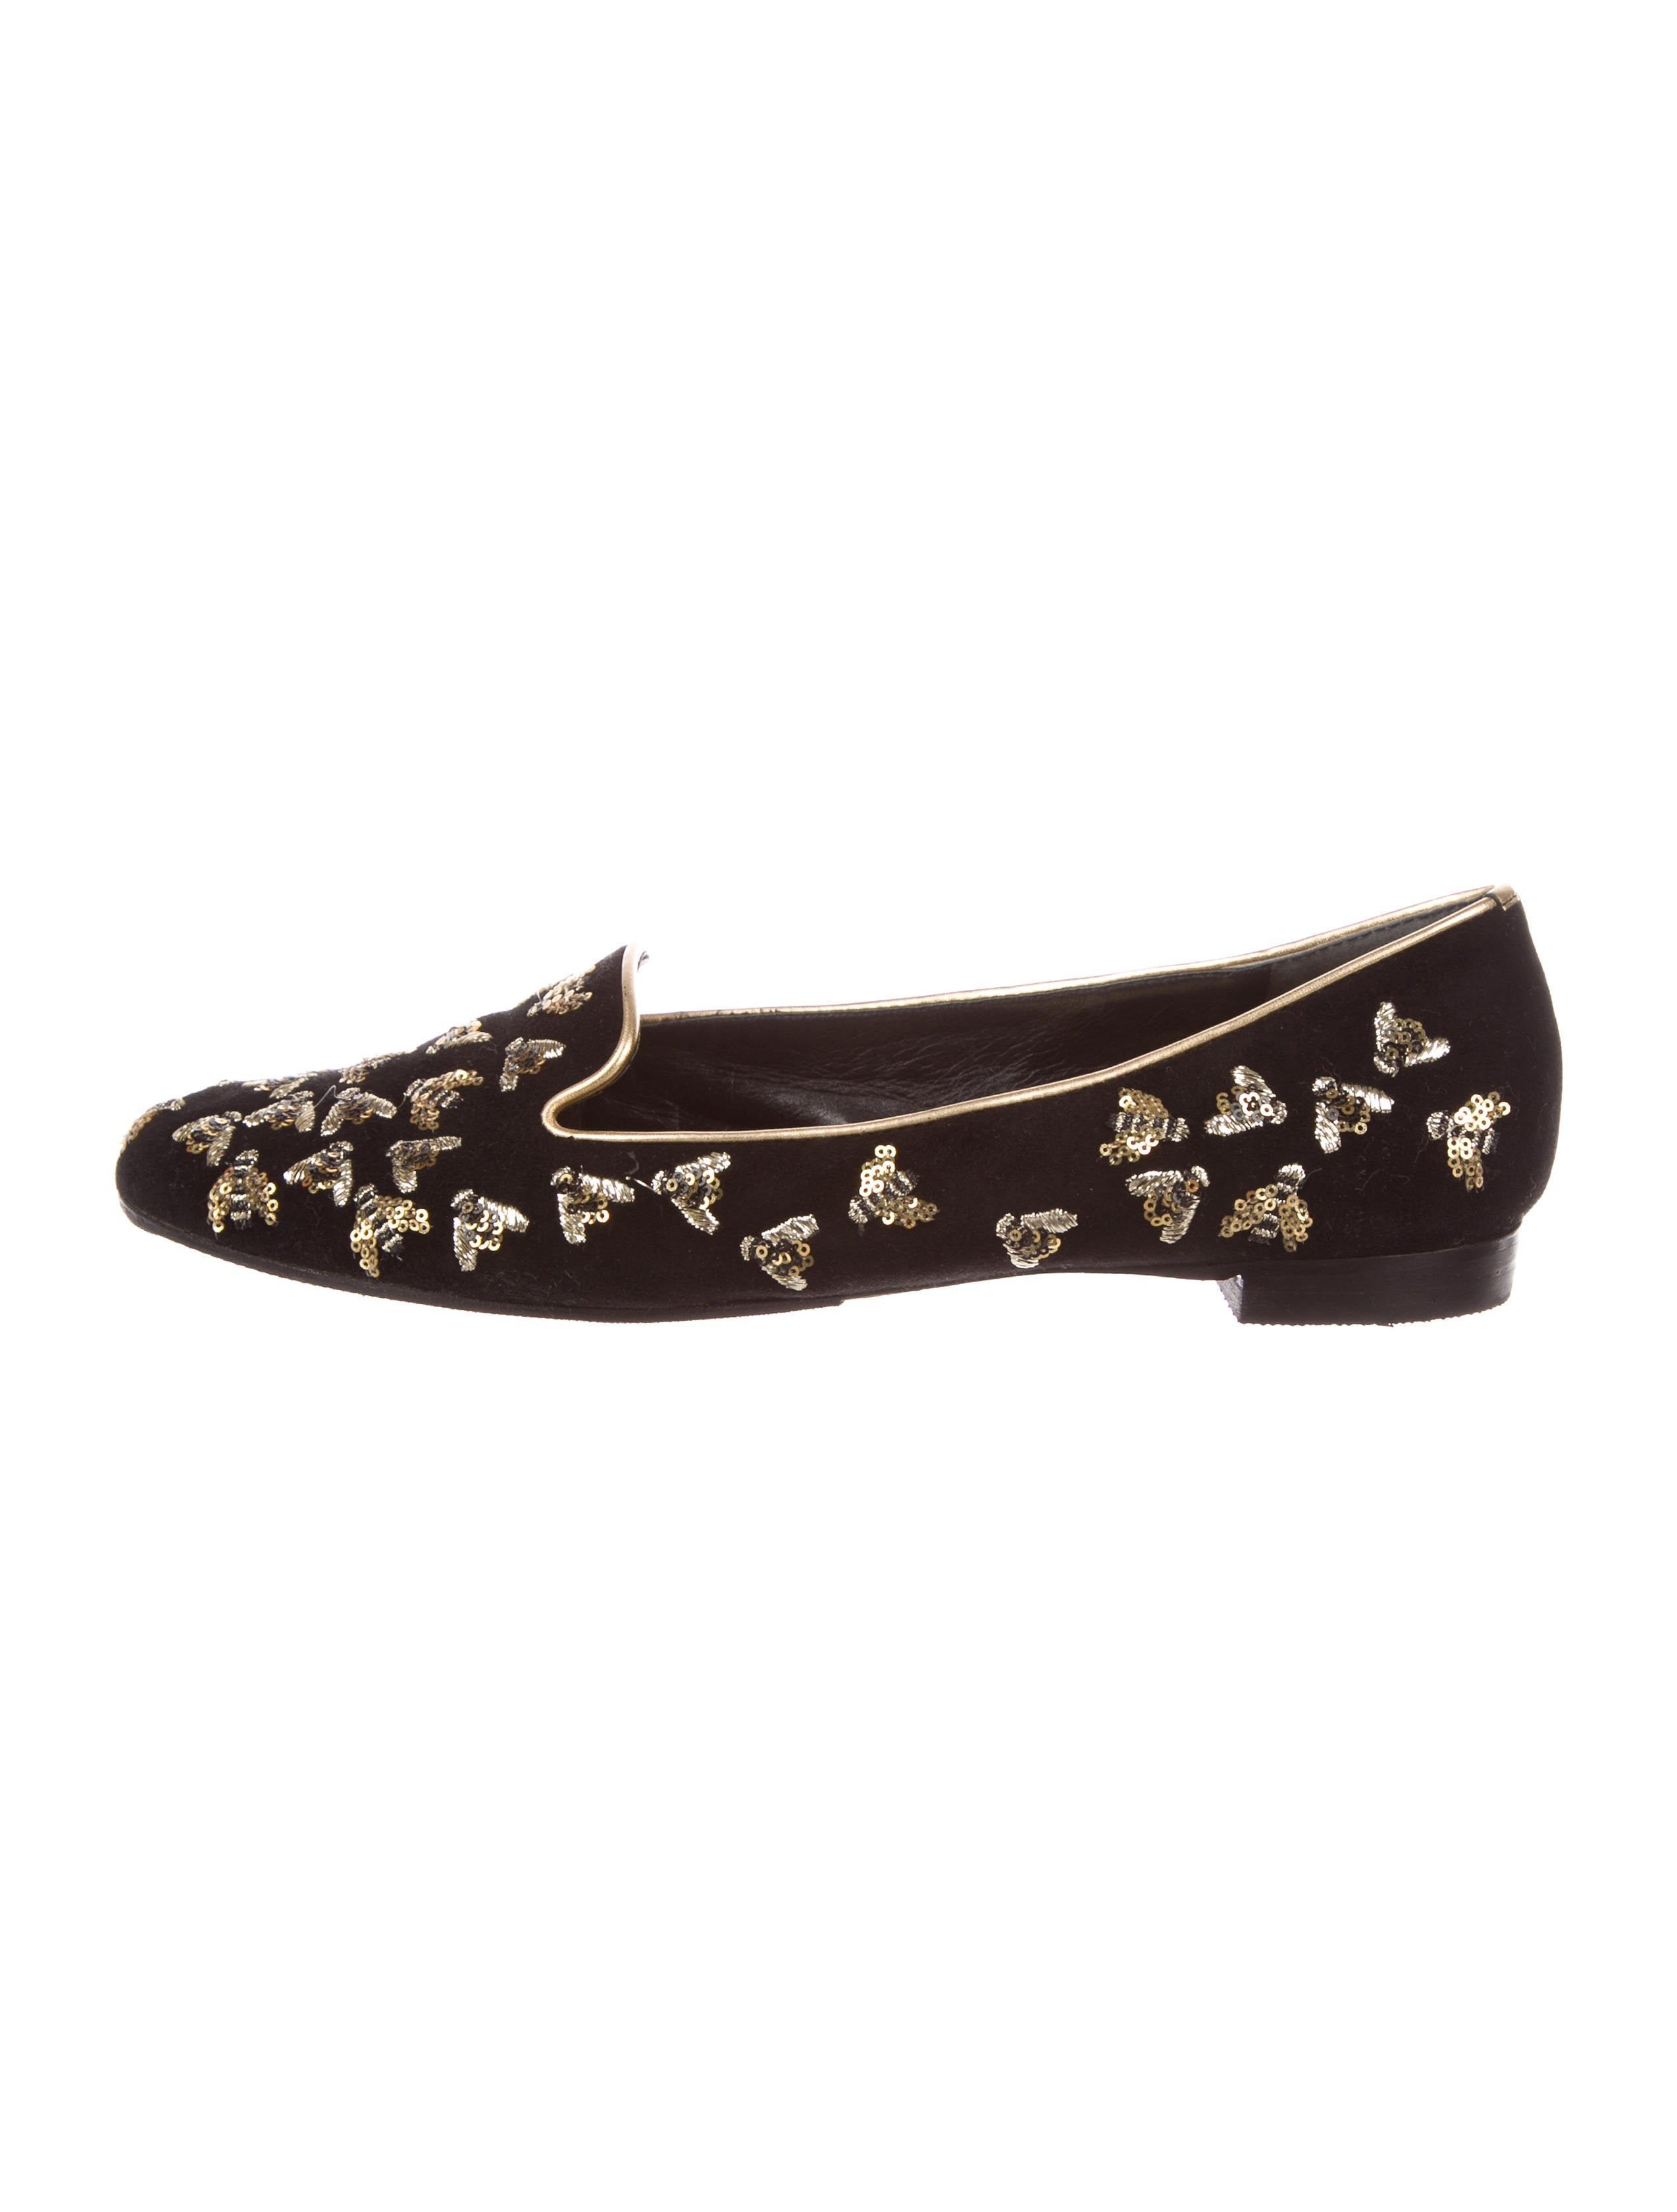 Alexander McQueen 2017 Sequined Bee Loafers free shipping prices 7XUVNZzf5Q